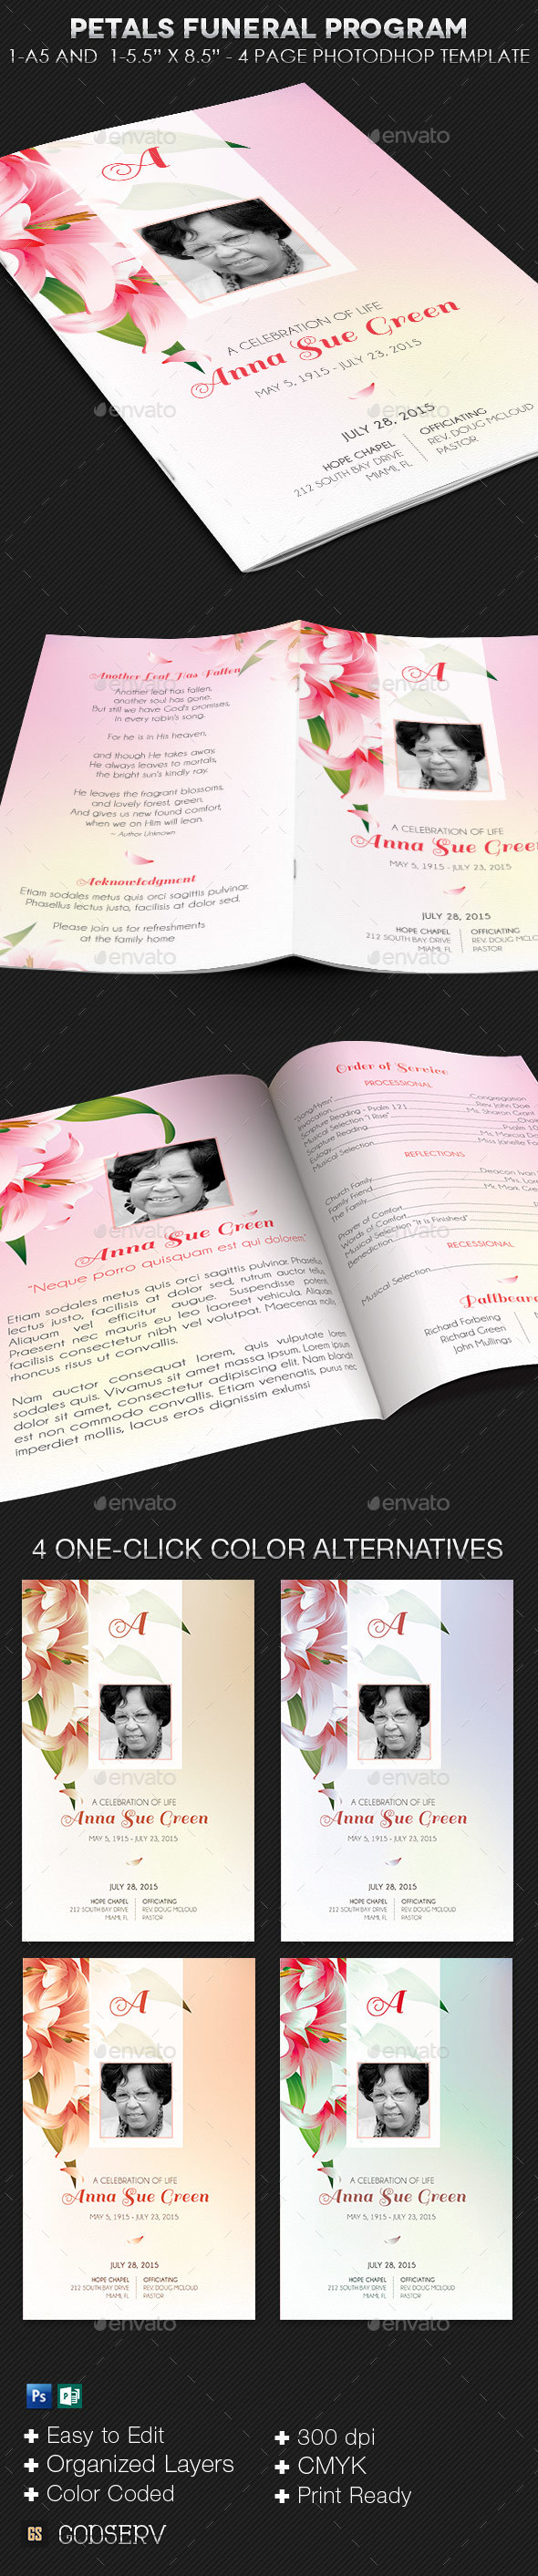 Petals Funeral Program Template - Informational Brochures